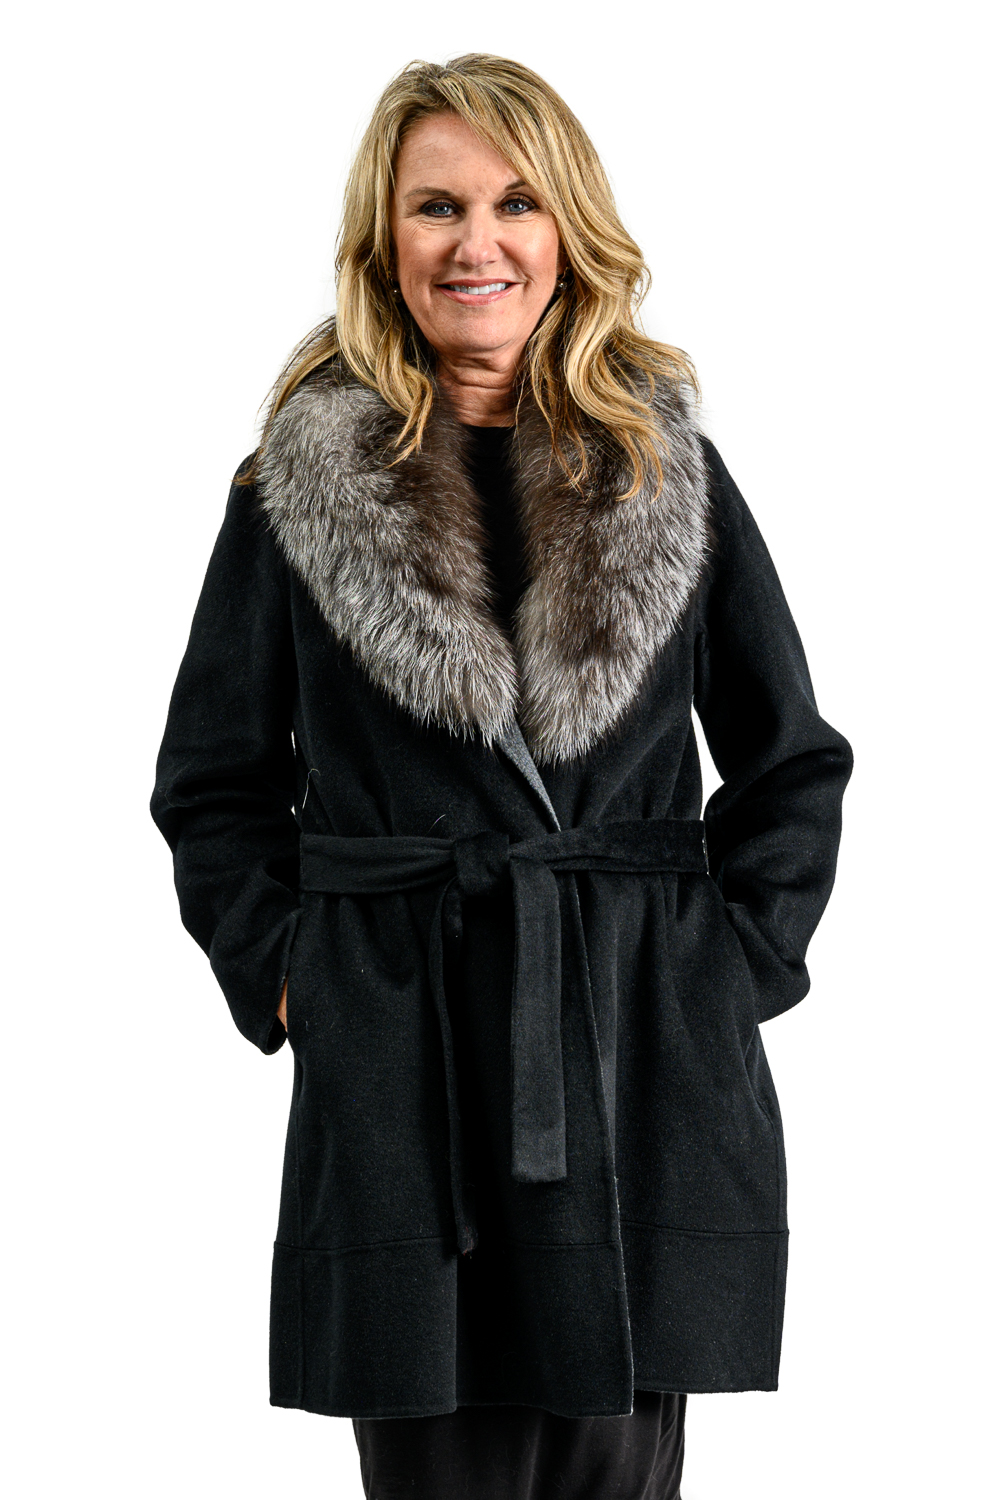 W70 2 Cashmere Wrap Coat with Fox Fur